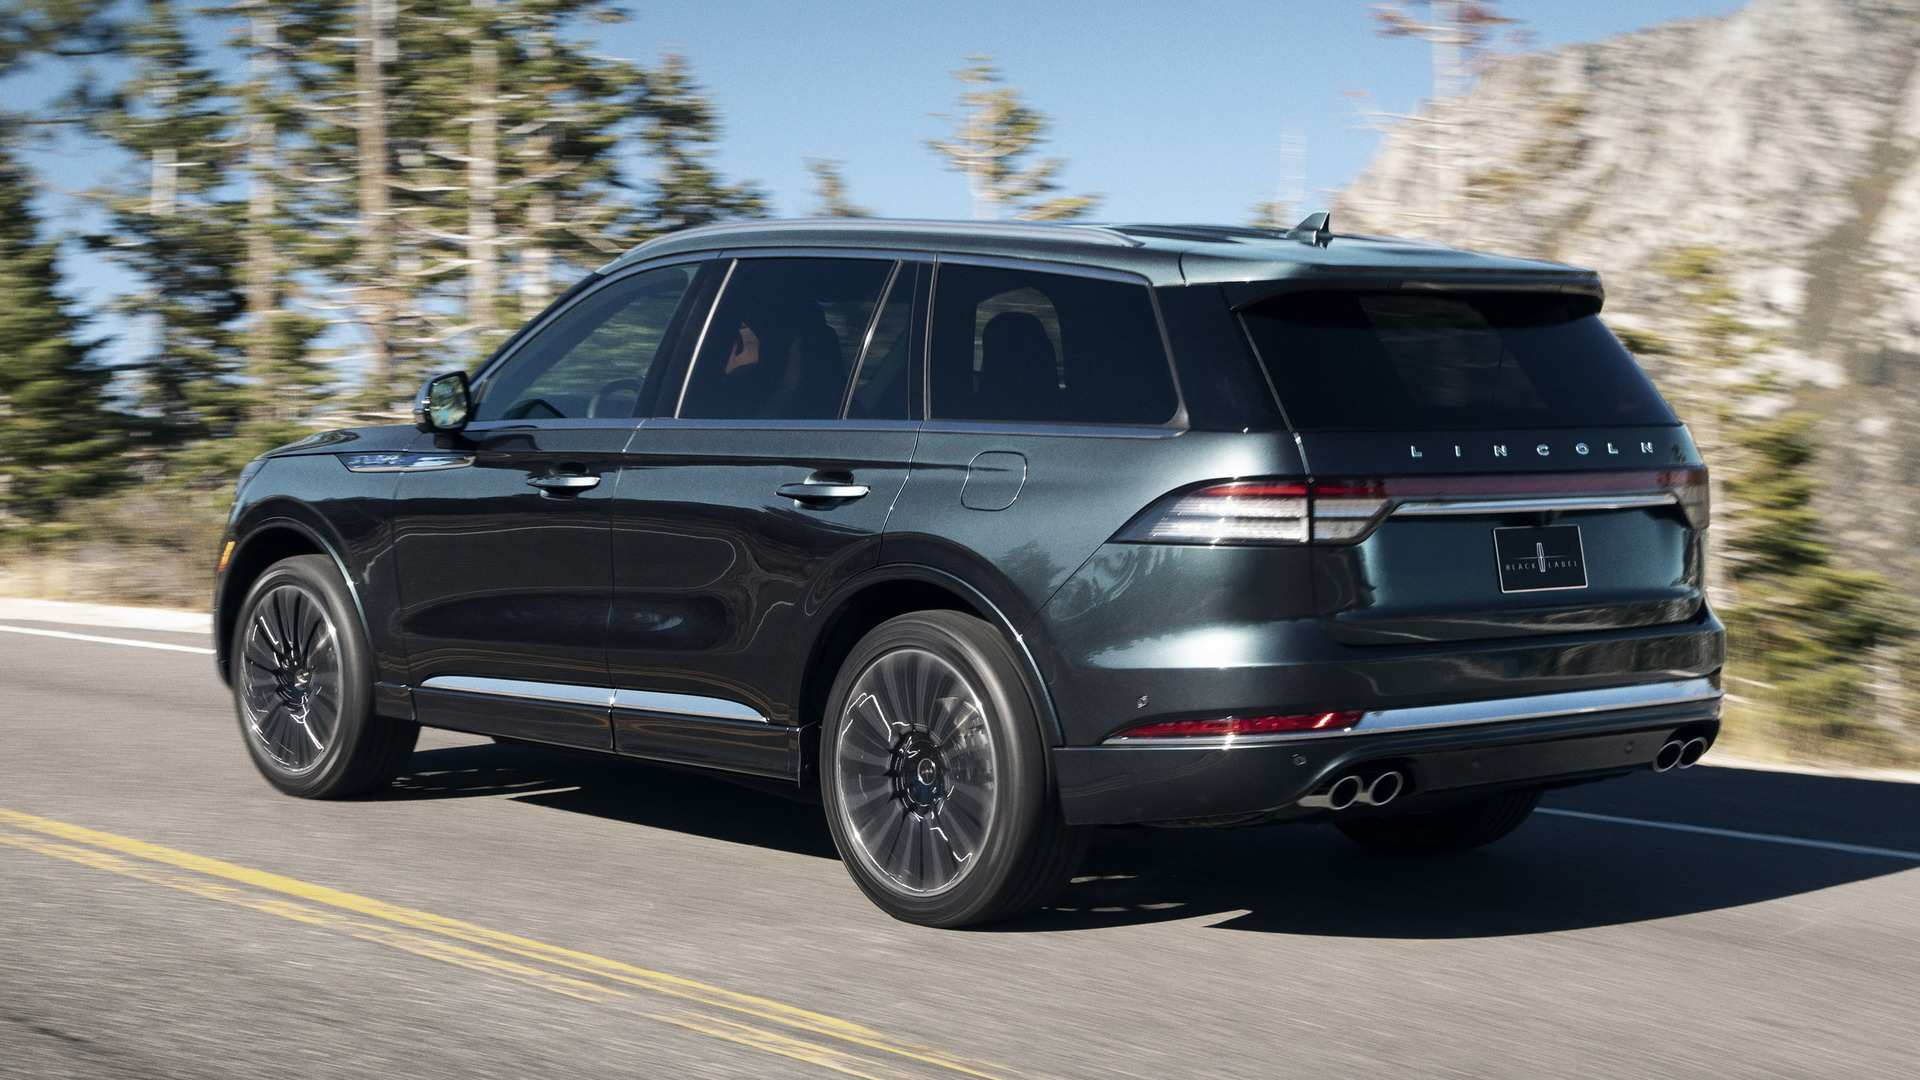 36 The Best 2020 Lincoln Aviator Vs Volvo Xc90 Spy Shoot